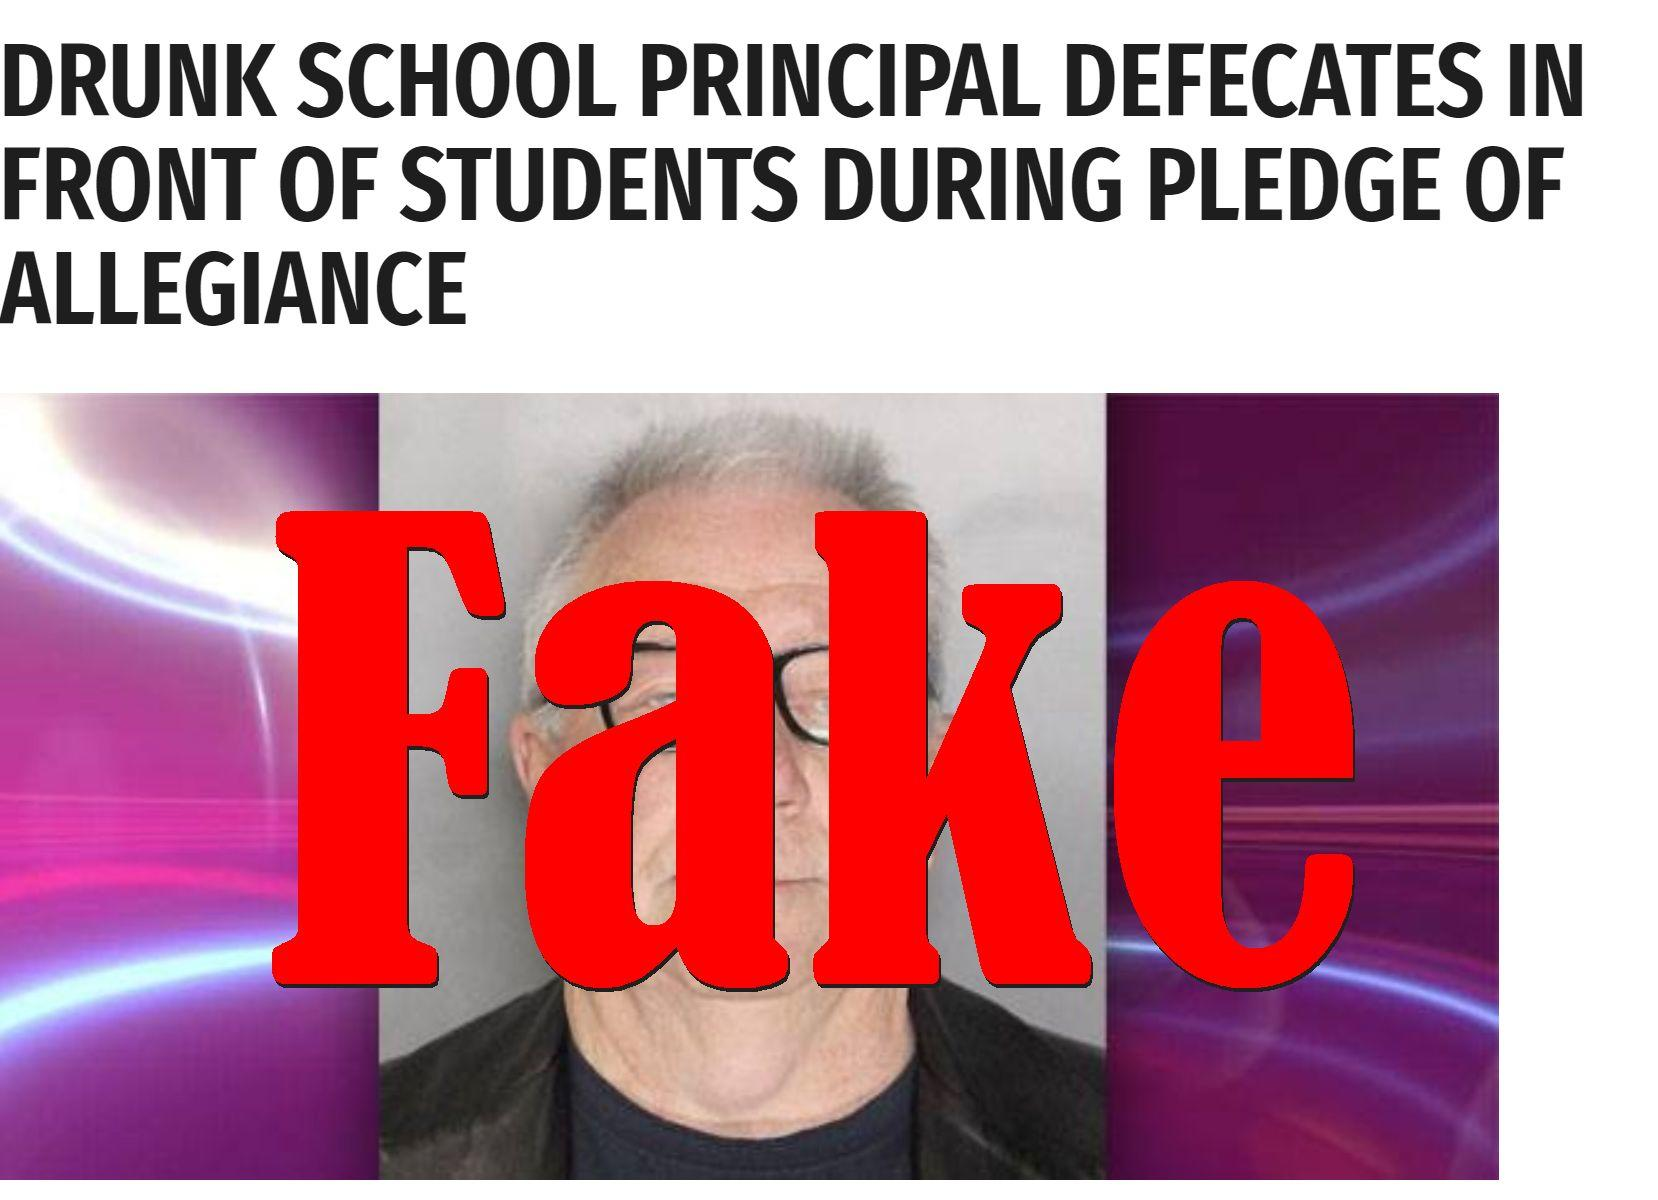 Fake News: Democrat Principal Did NOT Defecate In Front Of Students During Pledge Of Allegiance